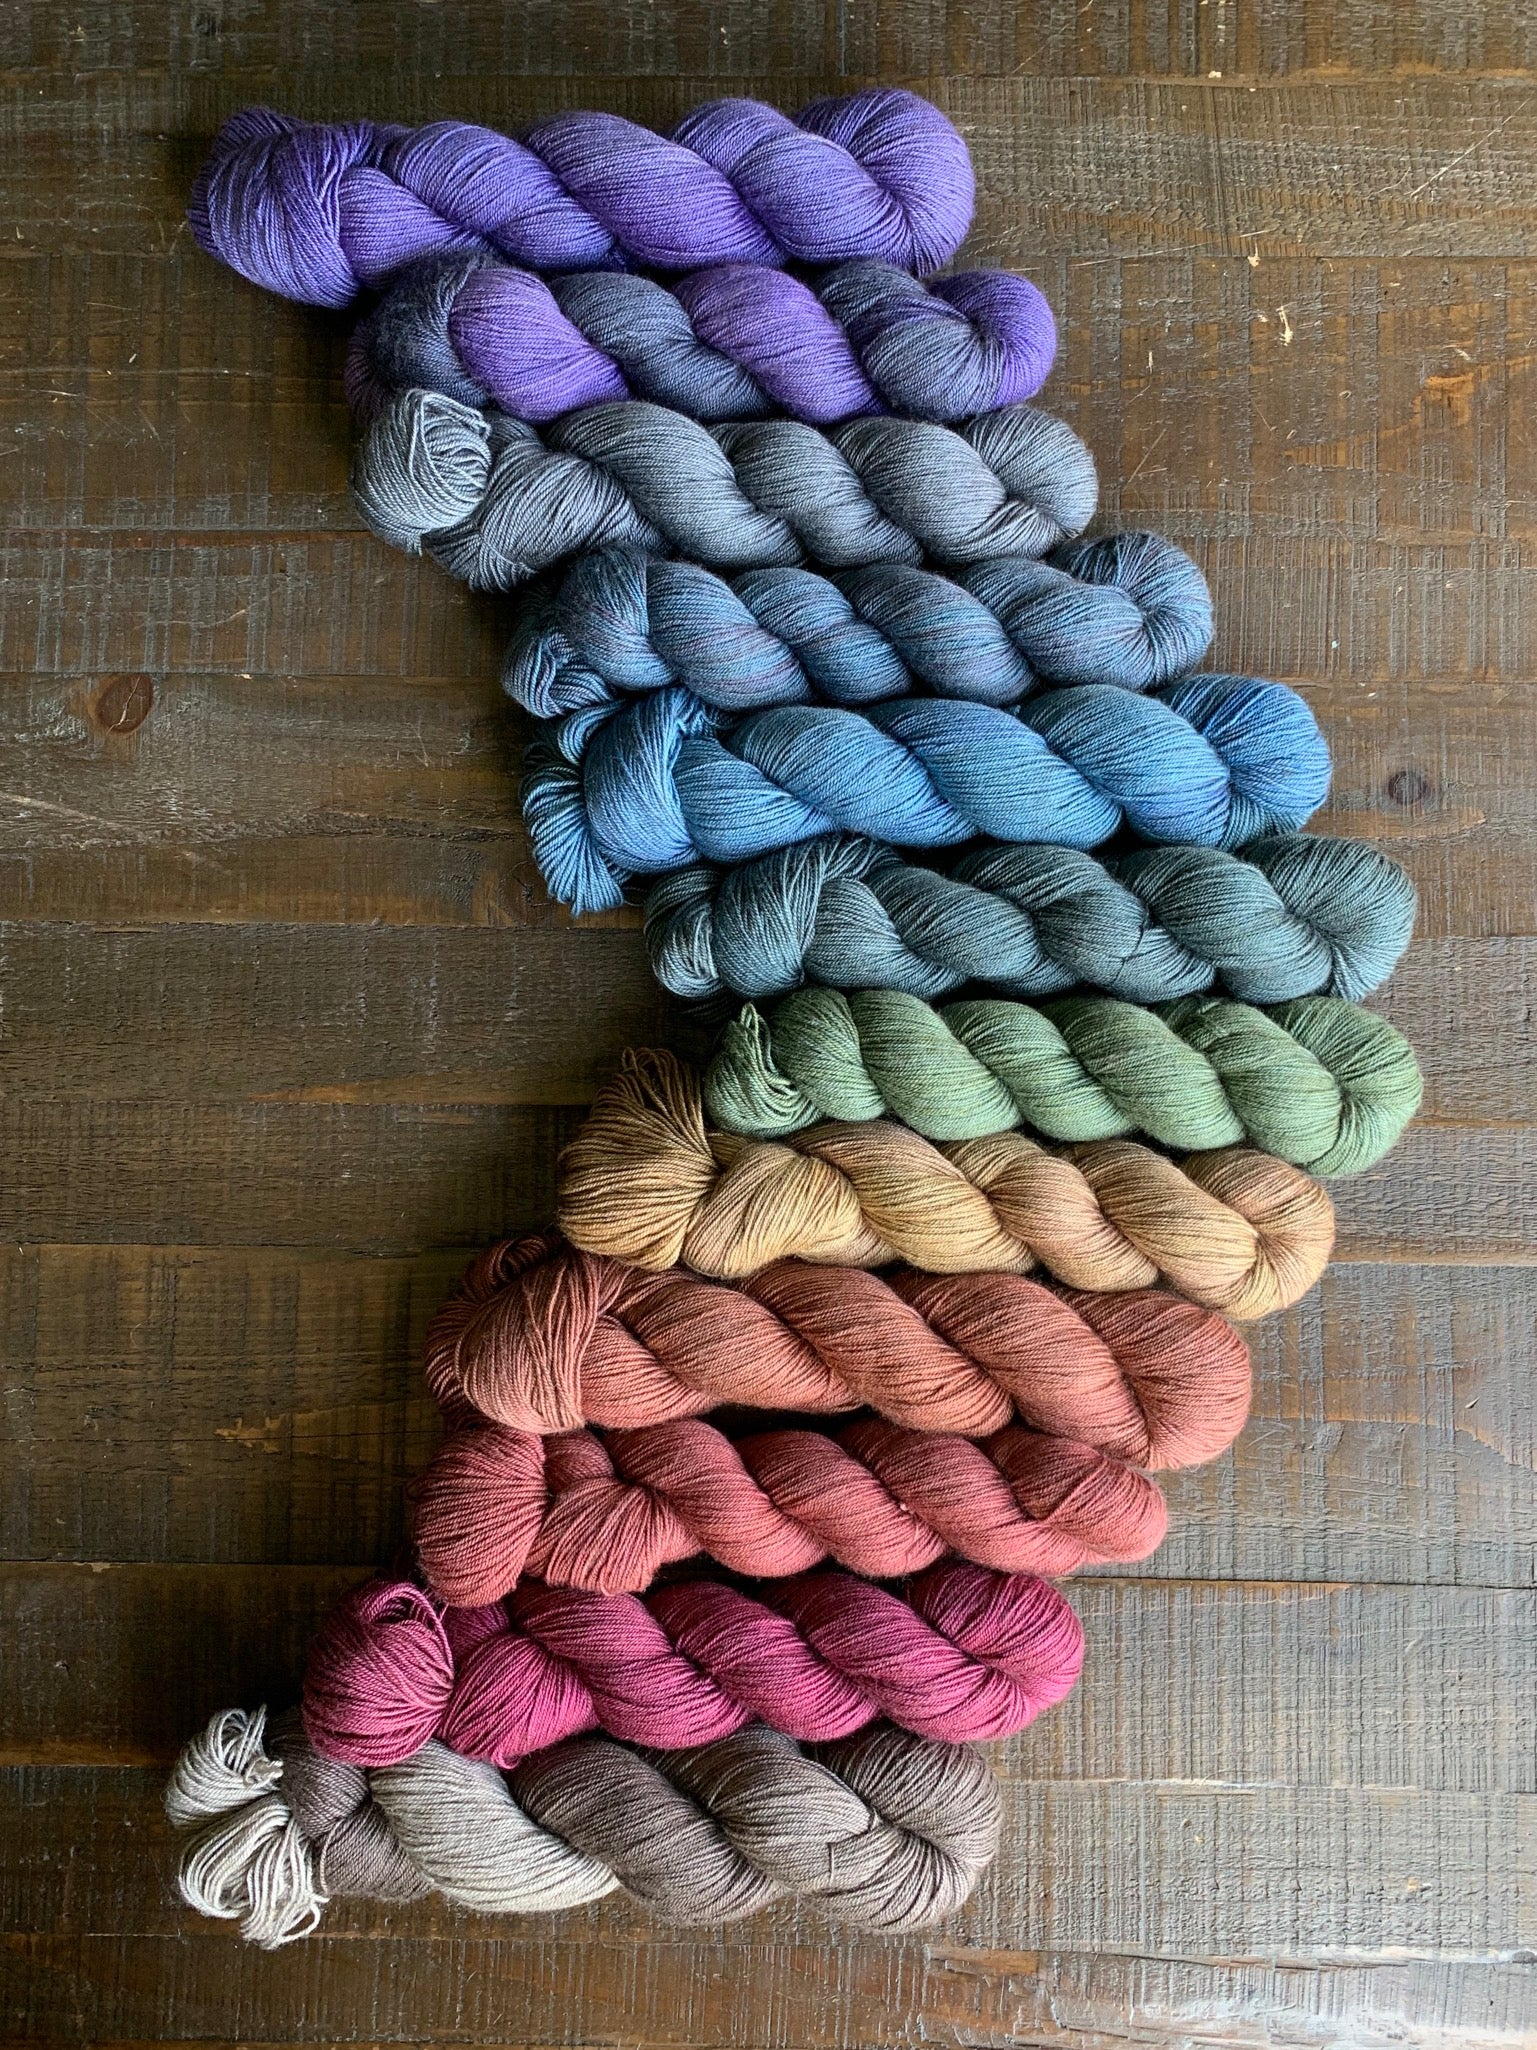 Nomad - Superwash Merino/Yak/Silk Fingering Weight Yarn